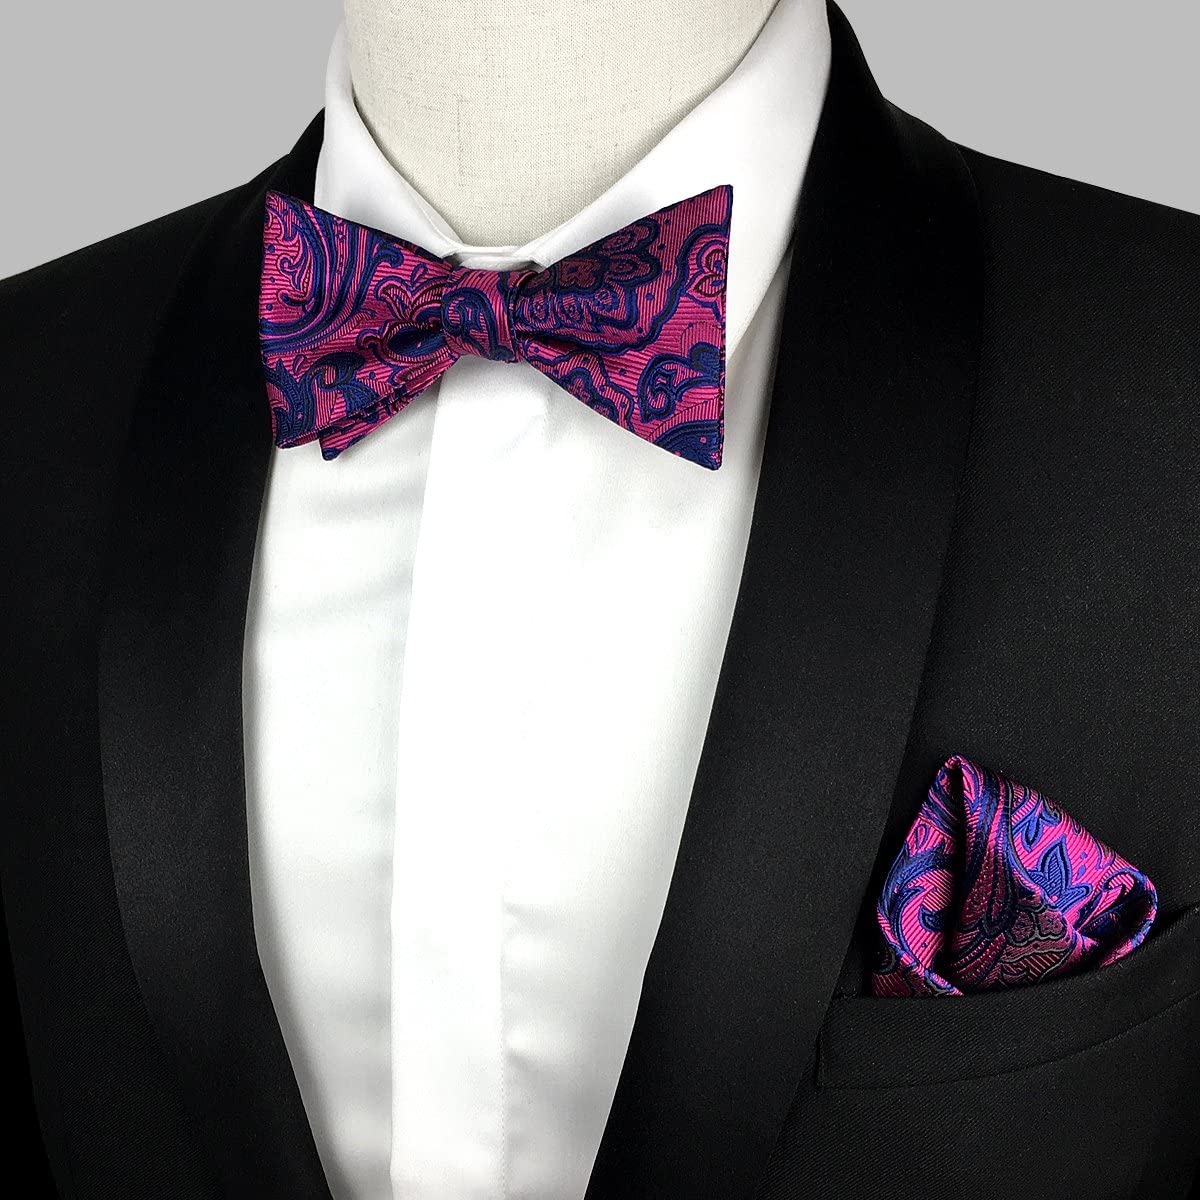 KOOELLE Floral Jacquard Pattern Bowtie for Mens Adjustable Classic Self Bow Tie Set